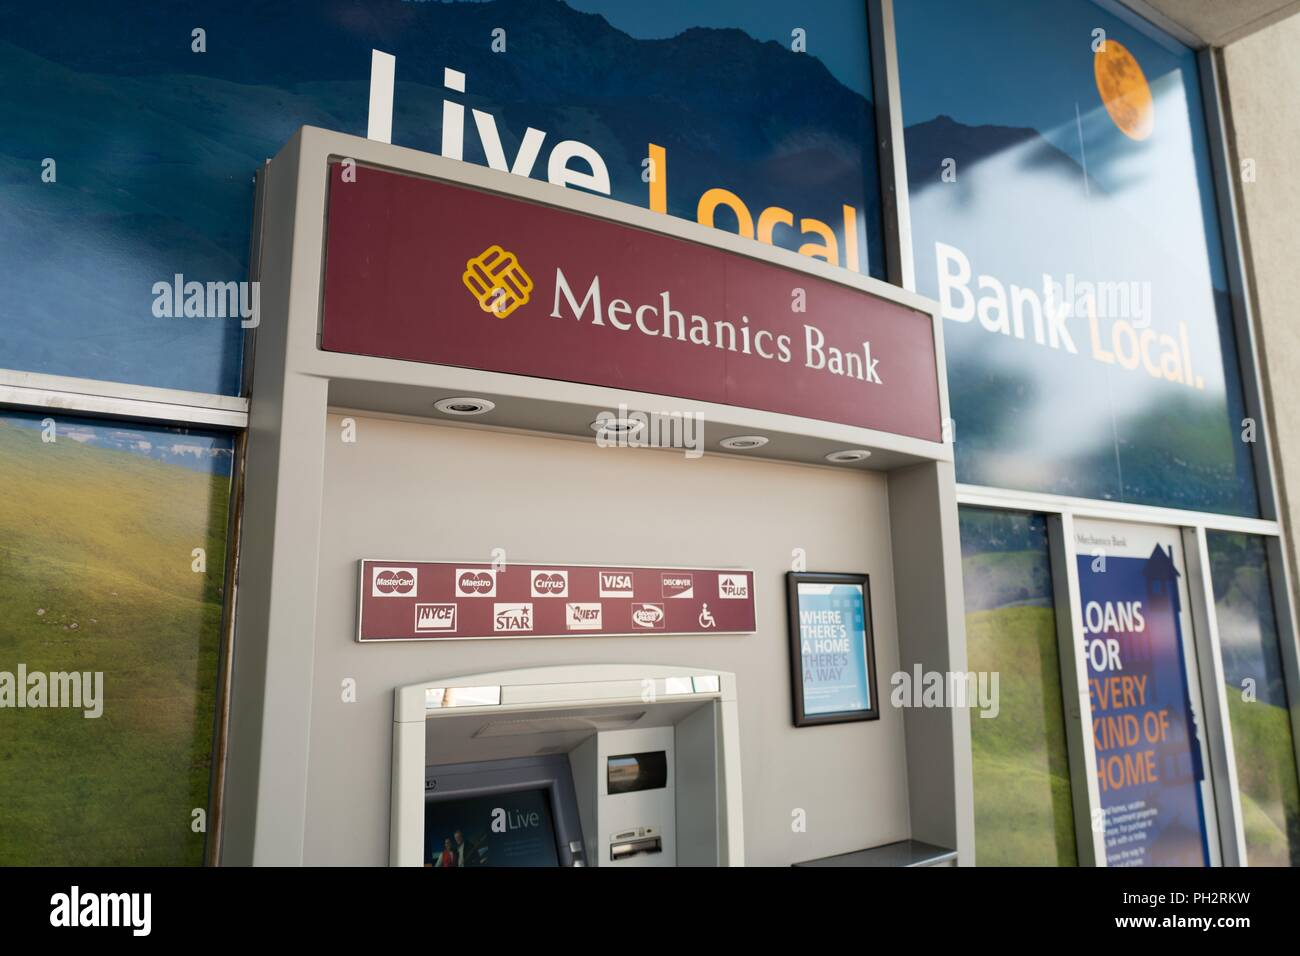 Close-up of automated teller machine (ATM) with logo for regional banking Mechanics Bank in the San Francisco Bay Area town of Walnut Creek, California, August 6, 2018. () - Stock Image